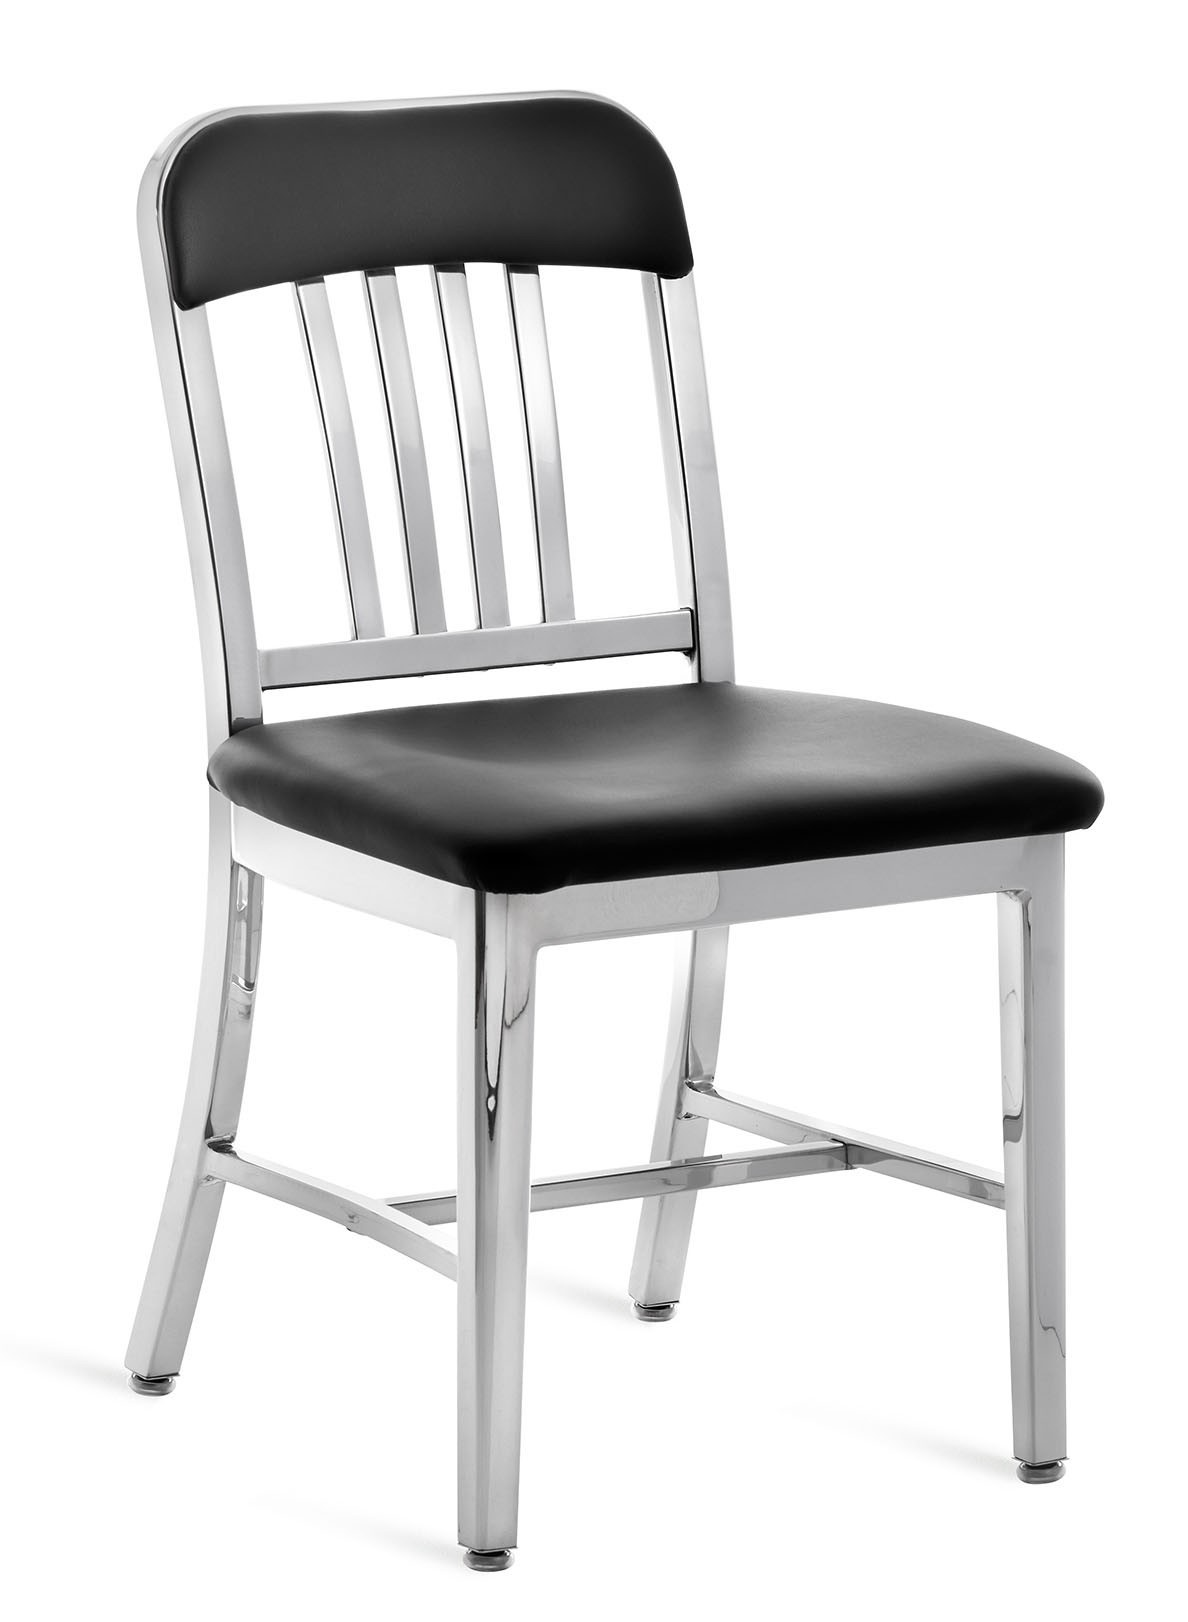 Emeco Navy SemiUpholstered Chair GR Shop Canada